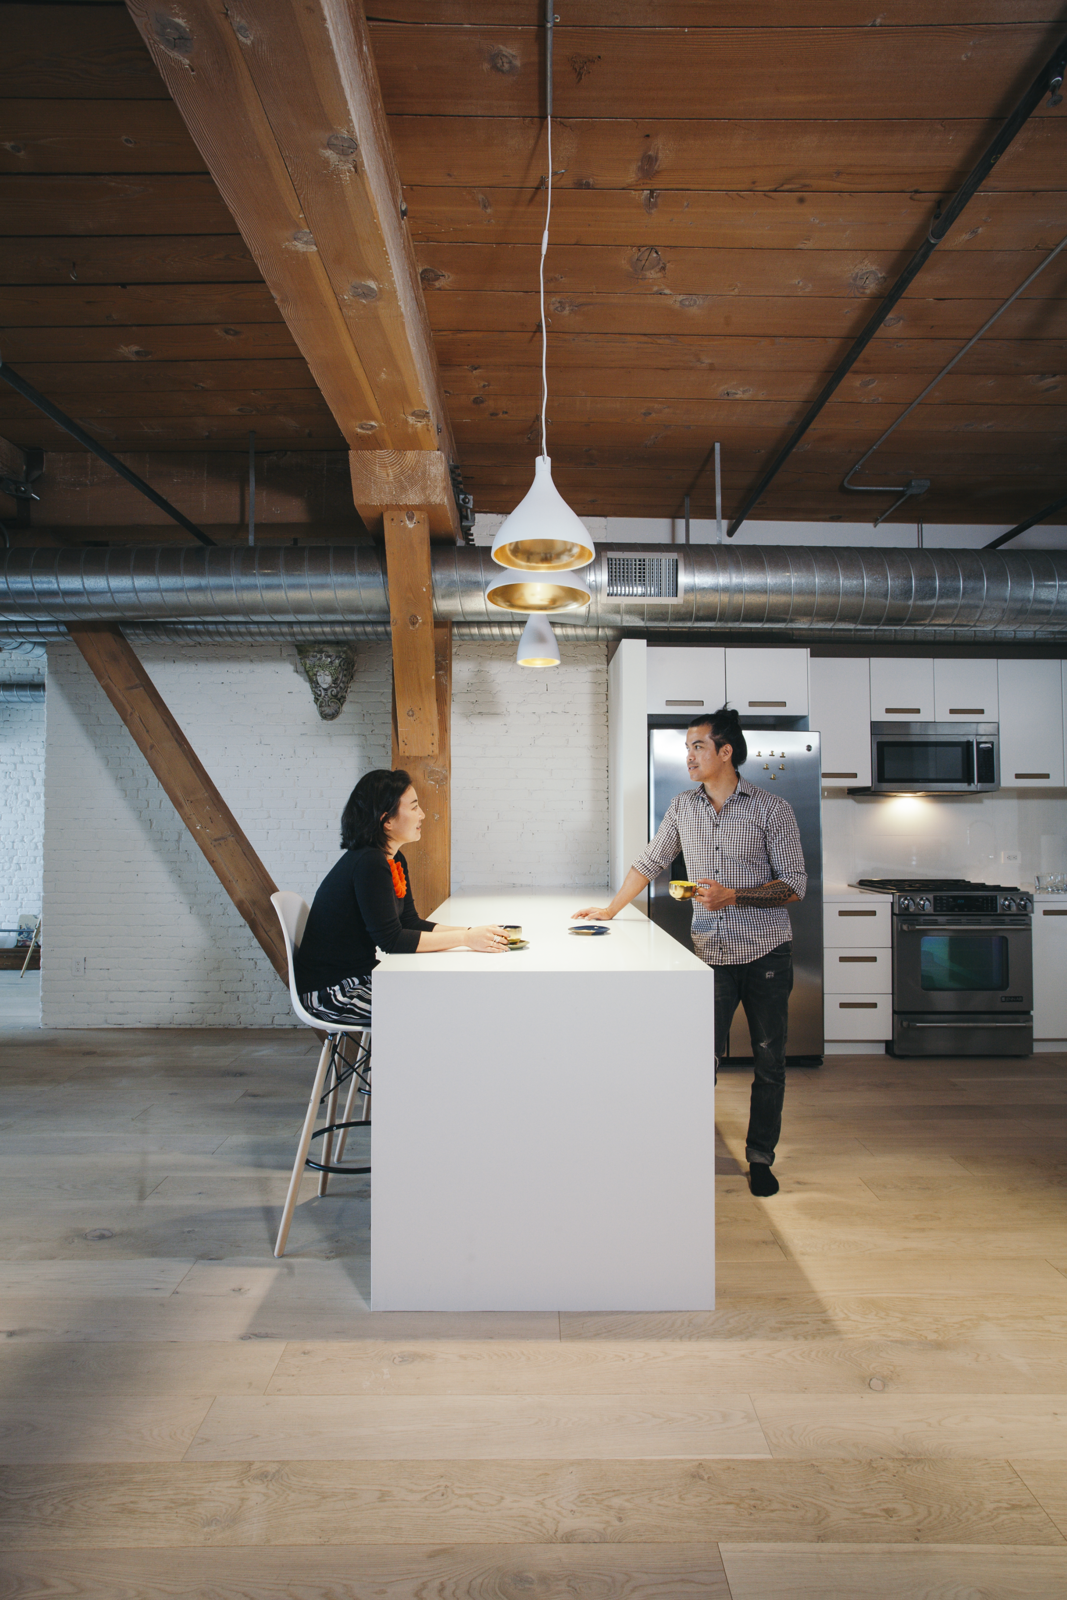 The kitchen features  Photo 7 of 10 in Step Inside One Couple's Game-Changing Live/Work Loft